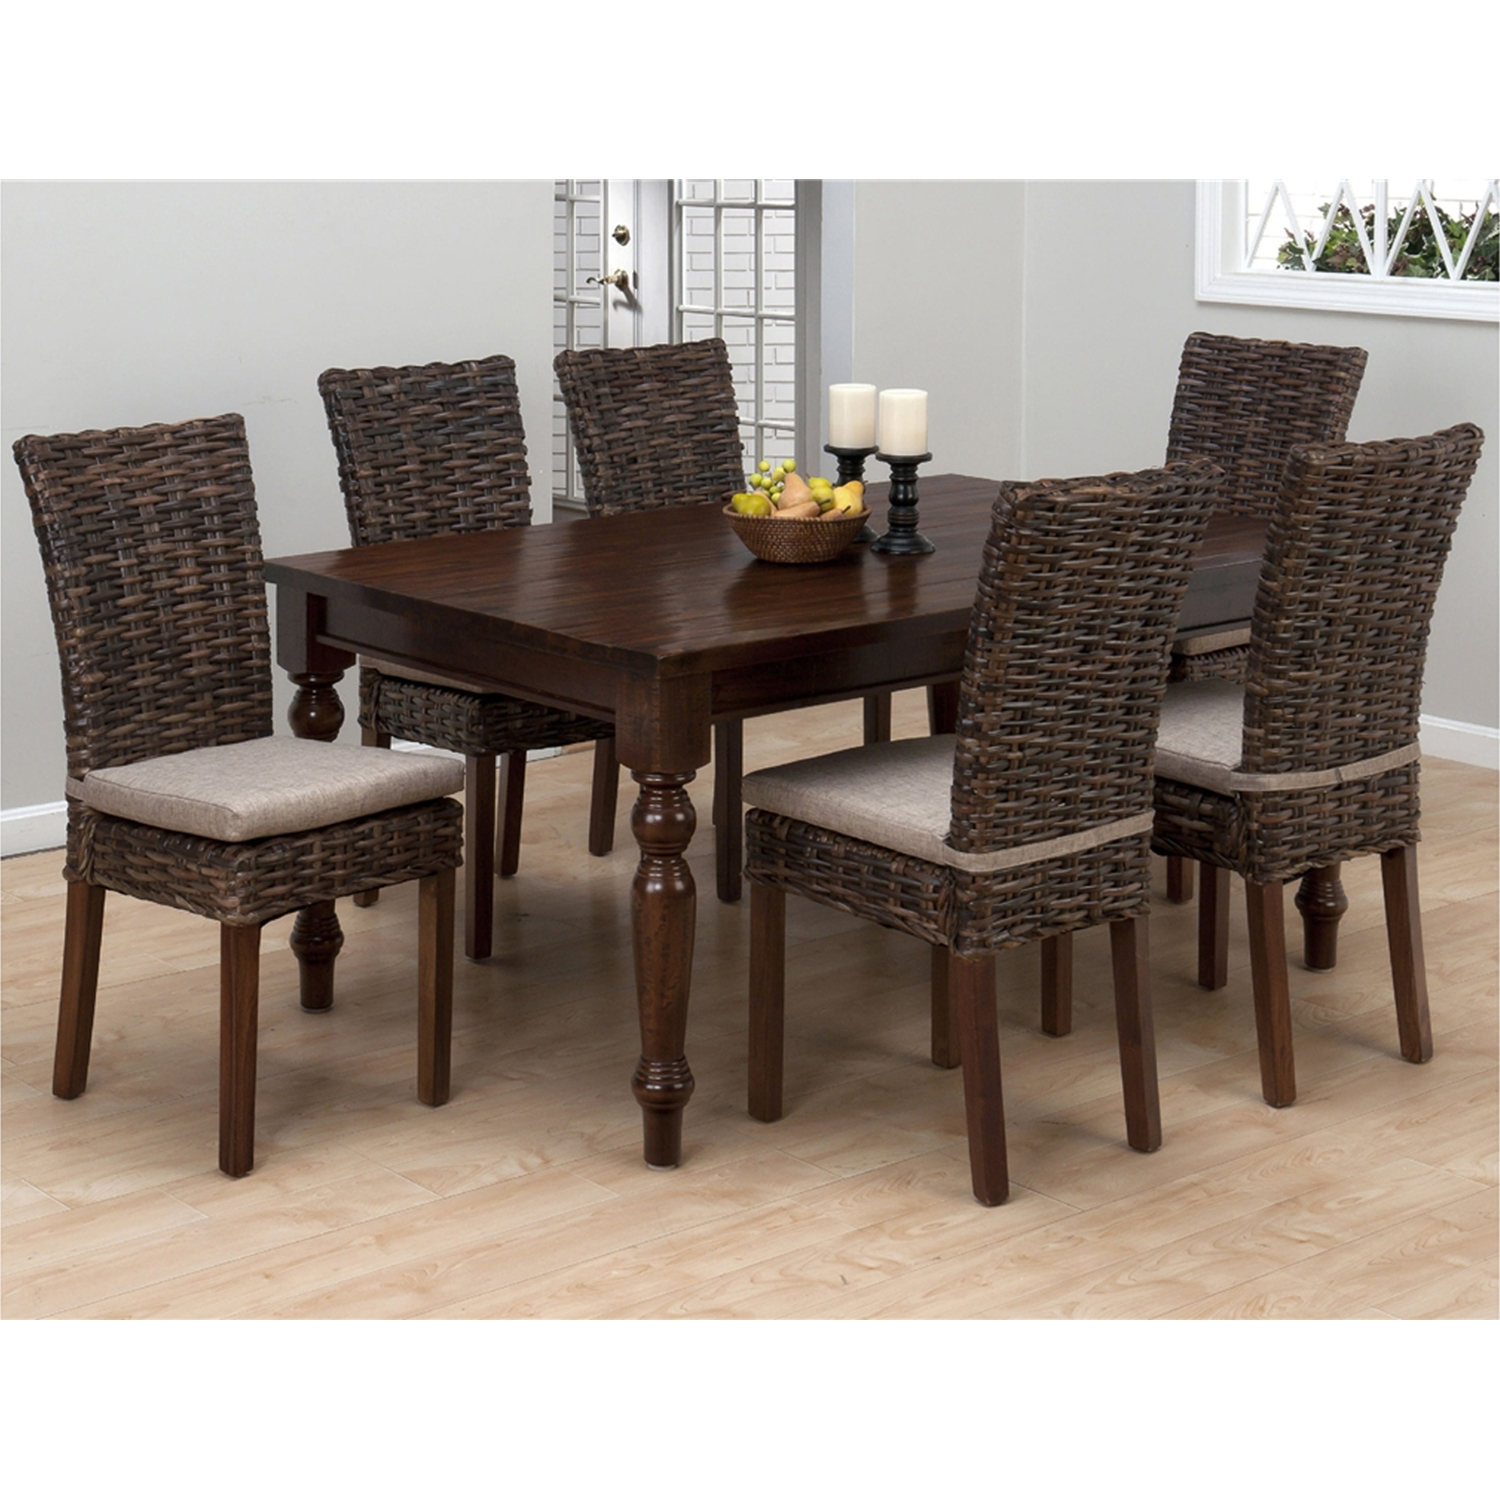 Urban Lodge 7 Pieces Dining Set - Rattan Chairs, Fixed Top Table, Brown - JOFR-733-66-401-SET